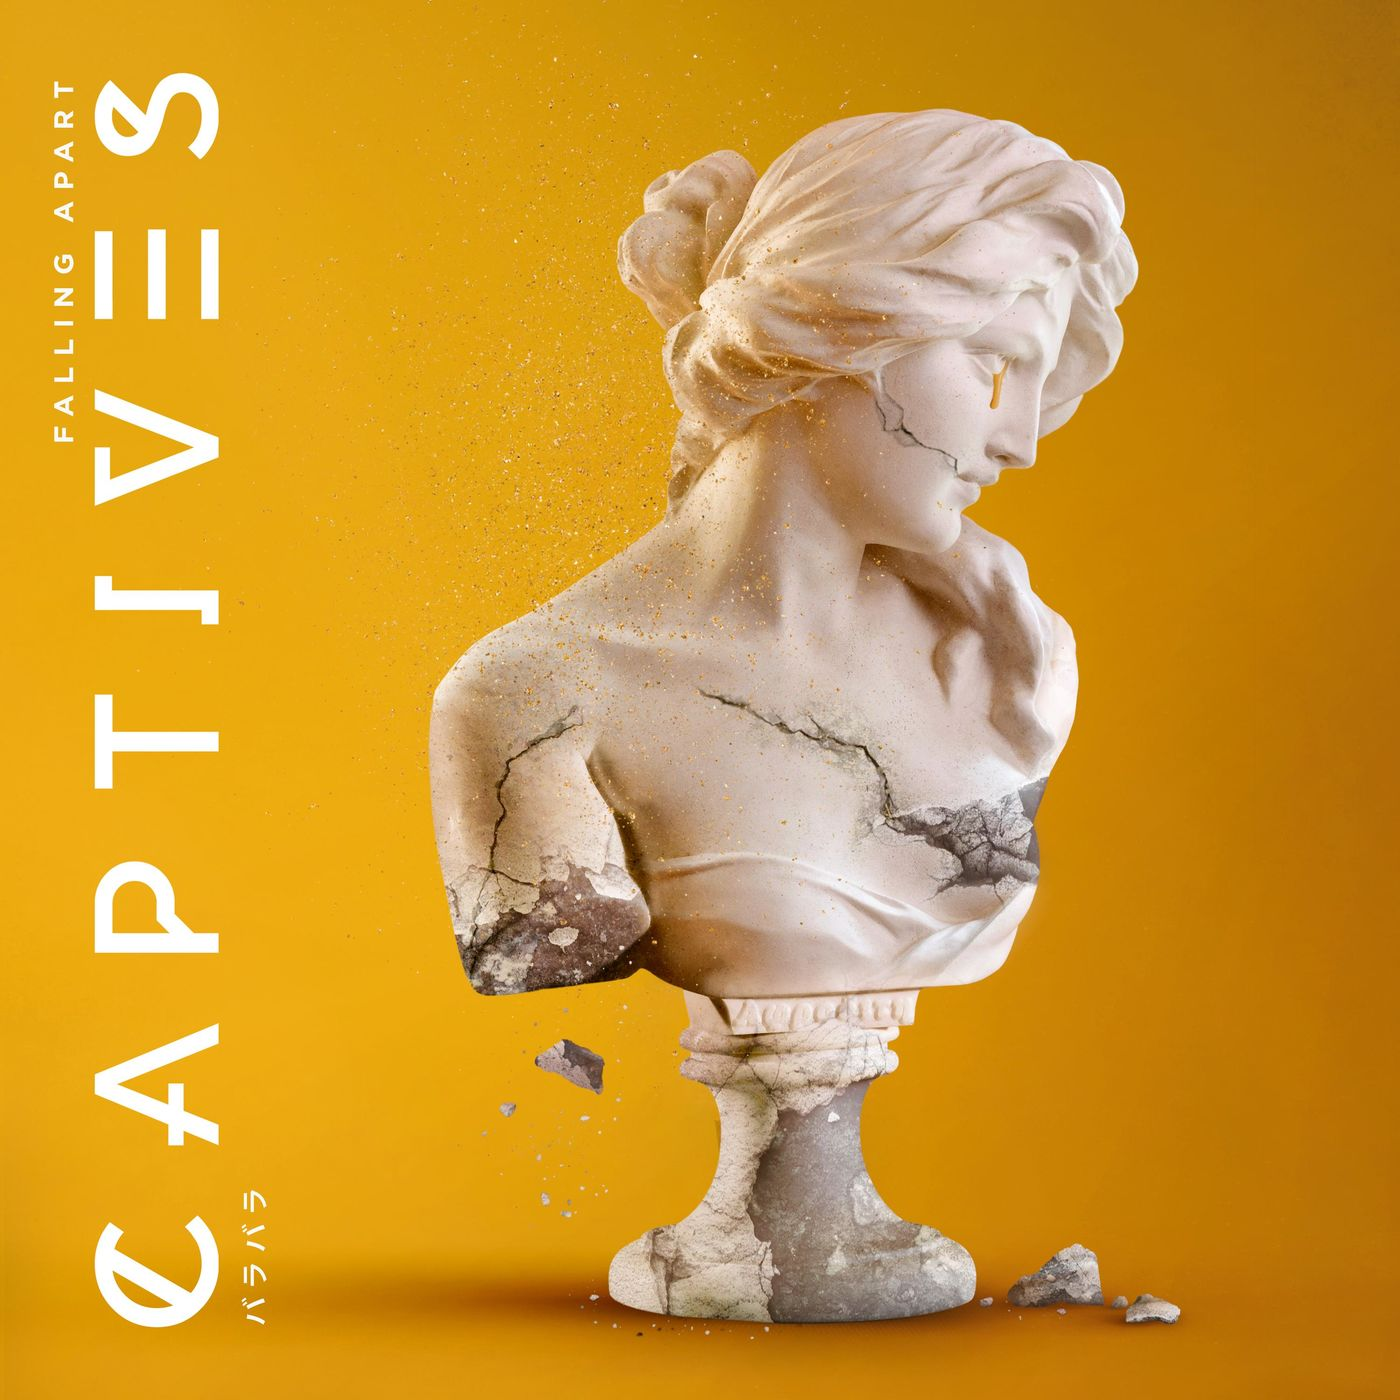 Captives - Falling Apart [single] (2020)